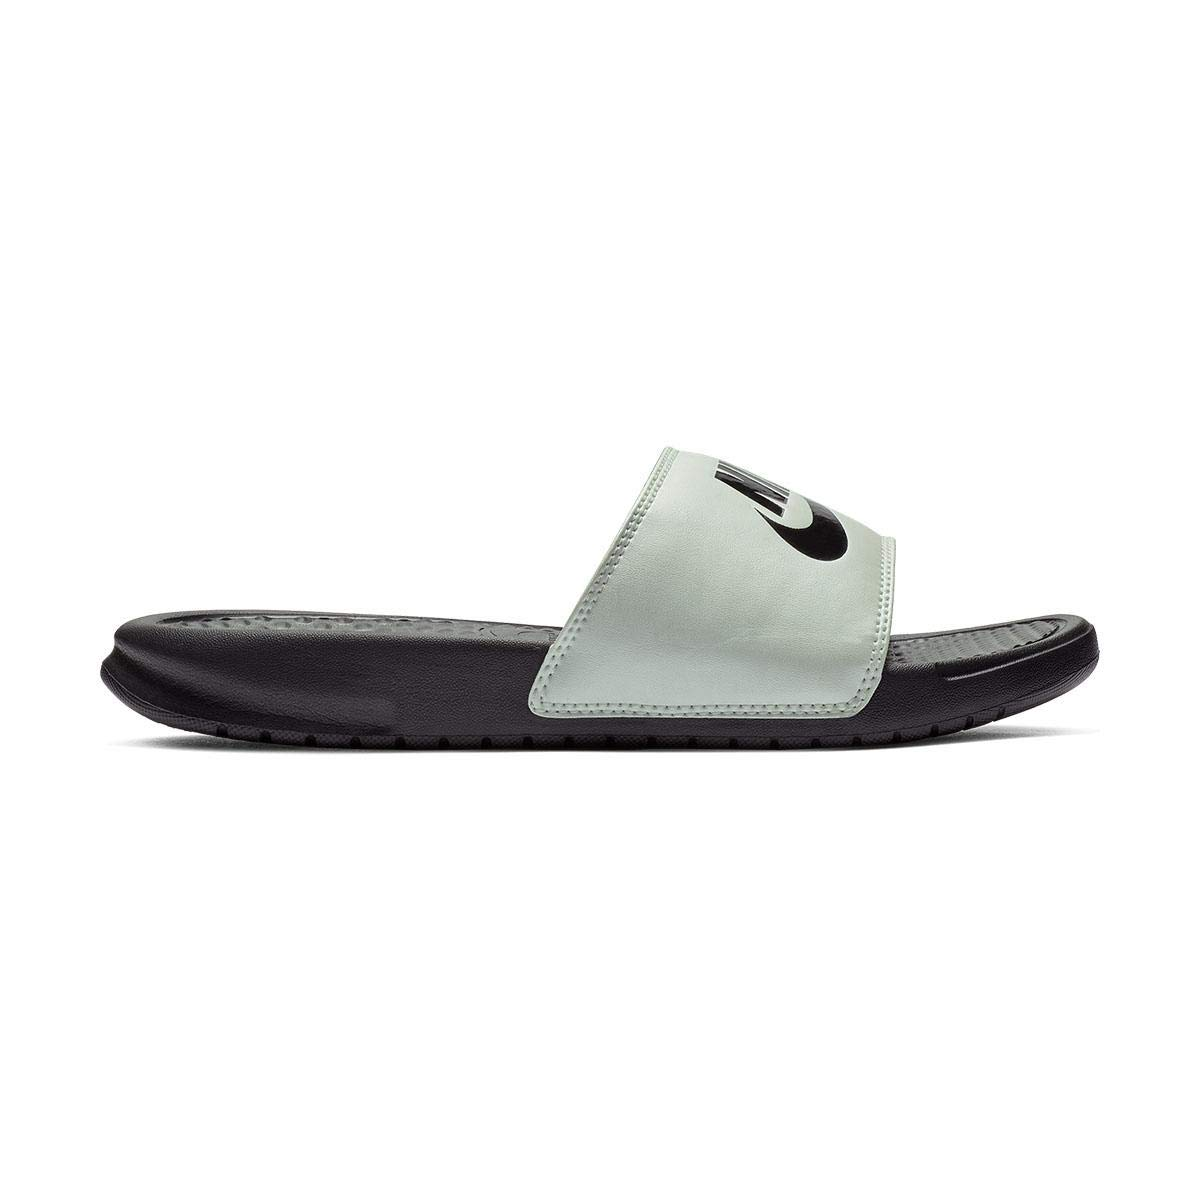 44efc38ee425 Amazon.com  NIKE Women s Benassi Just Do It Synthetic Sandal  Shoes